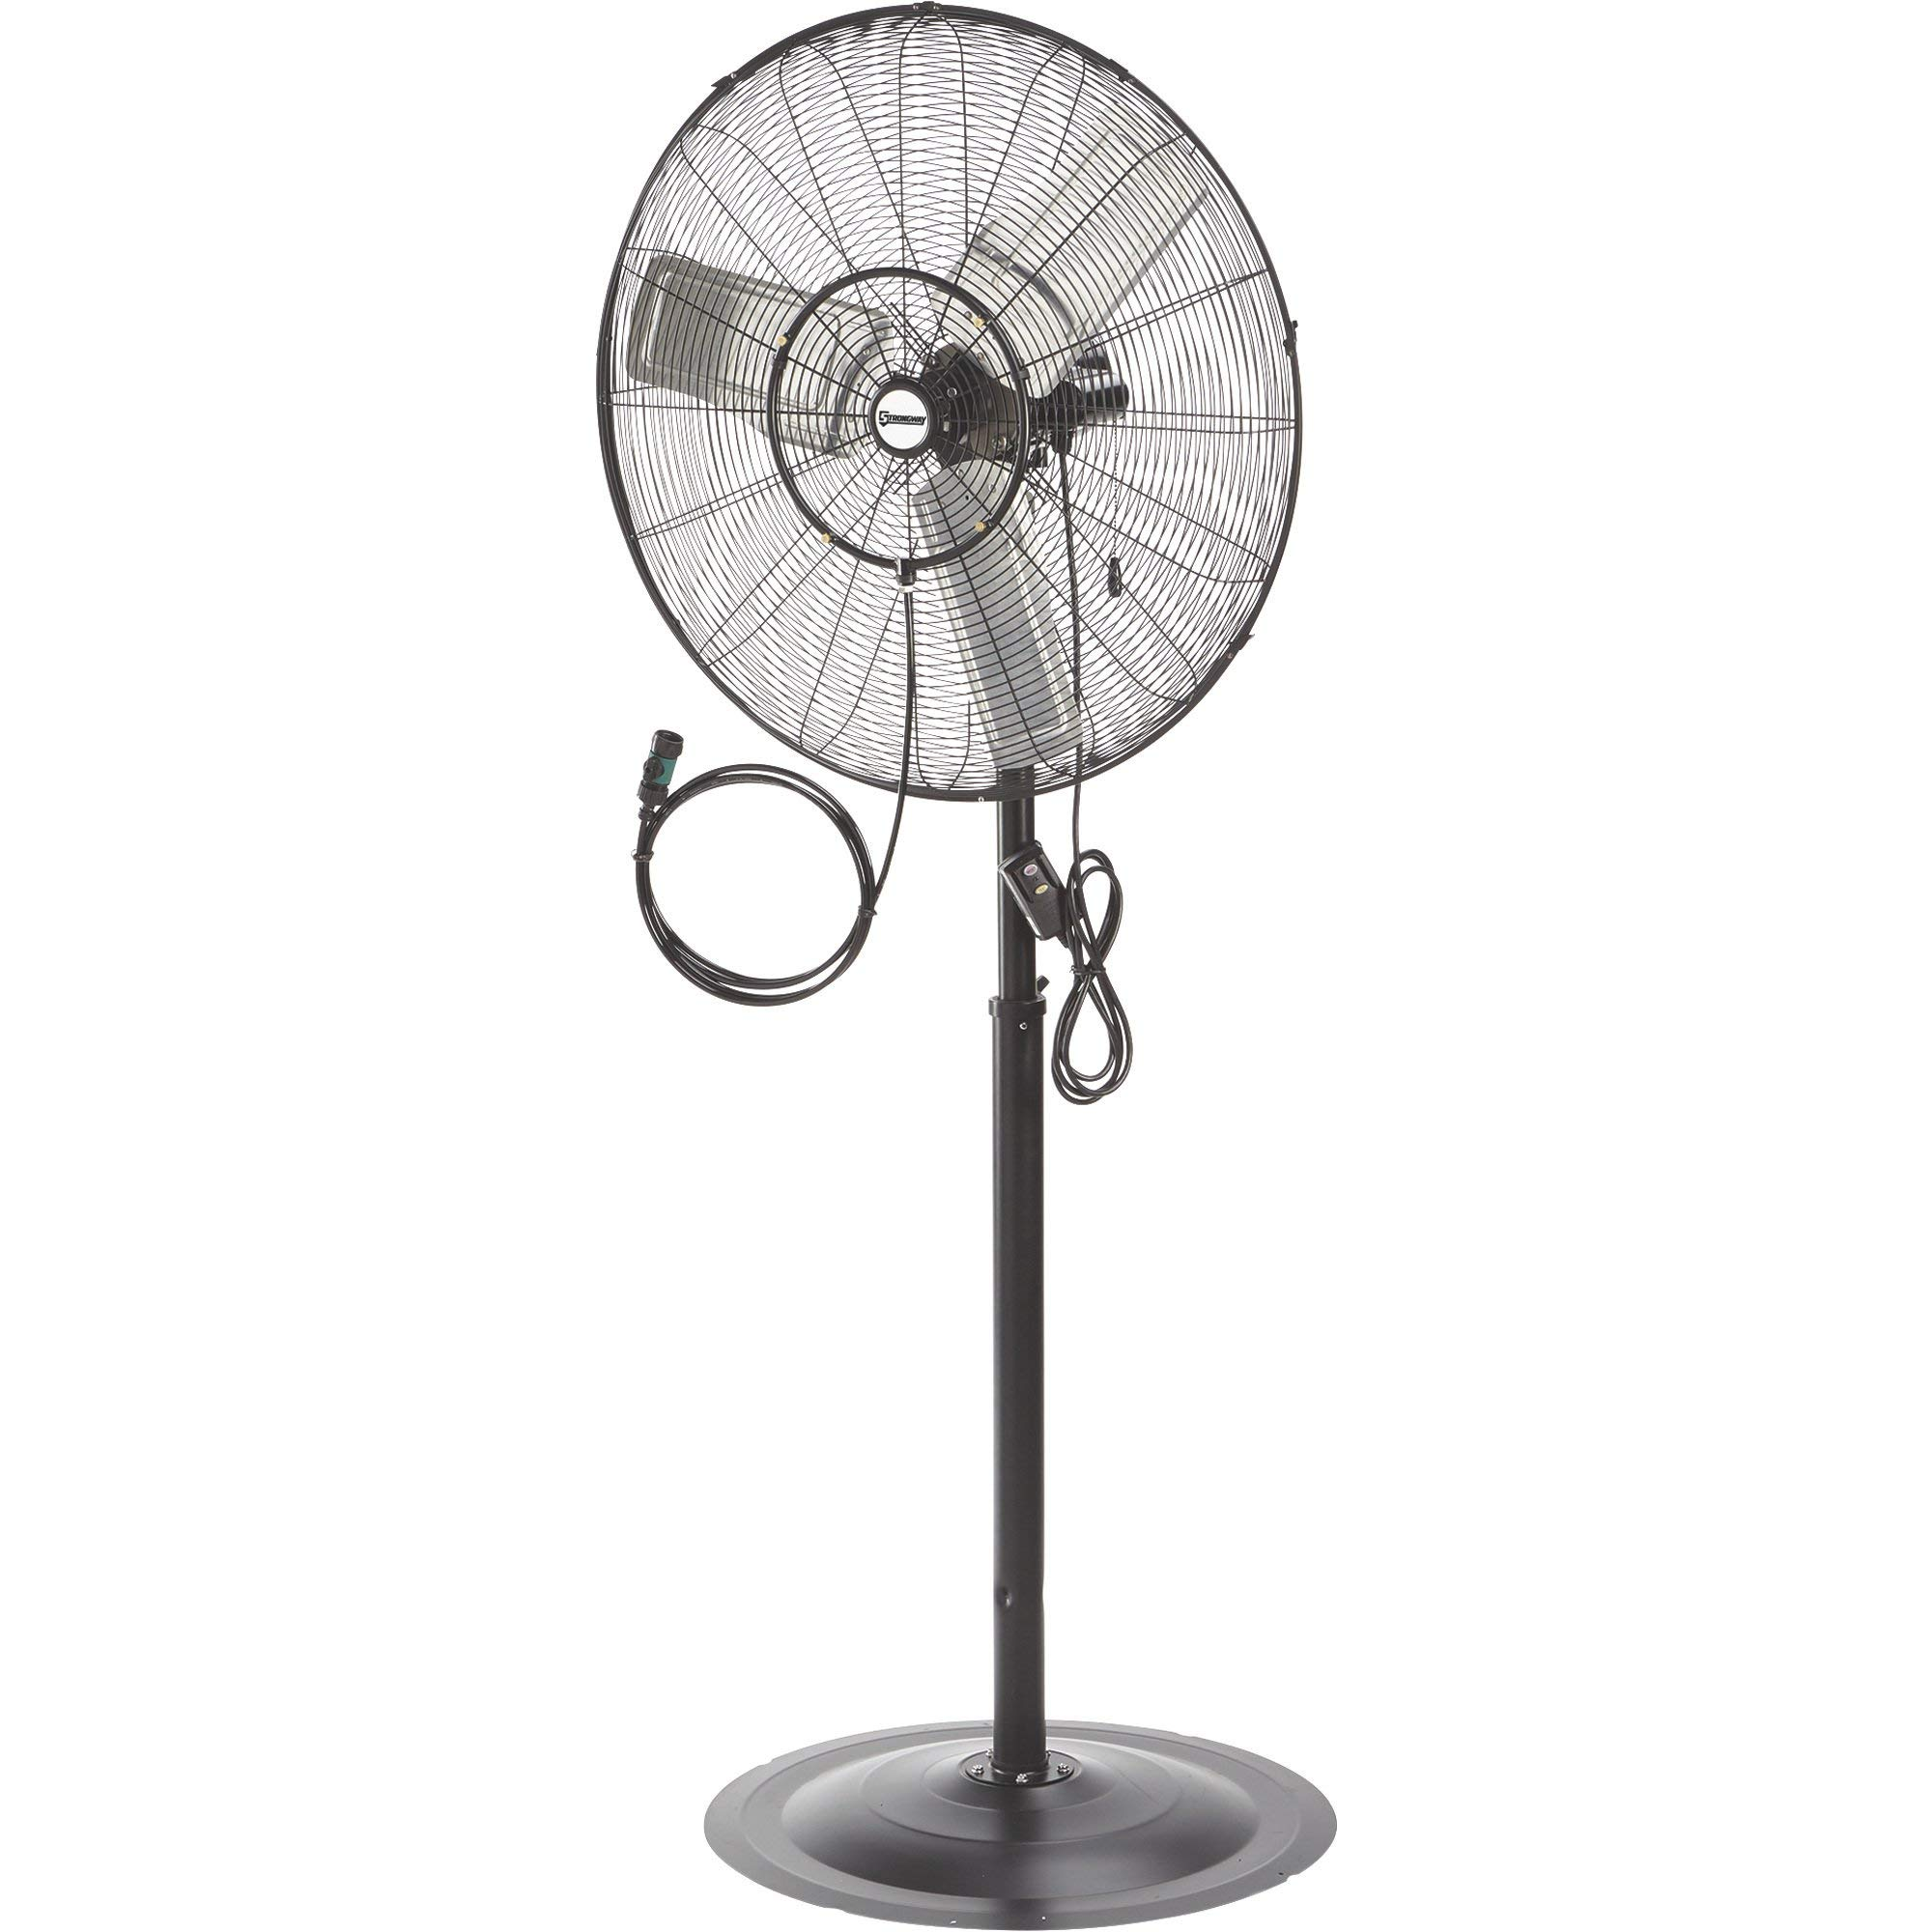 Strongway Outdoor Pedestal Misting Fan - 30in. 7200 CFM by Strongway